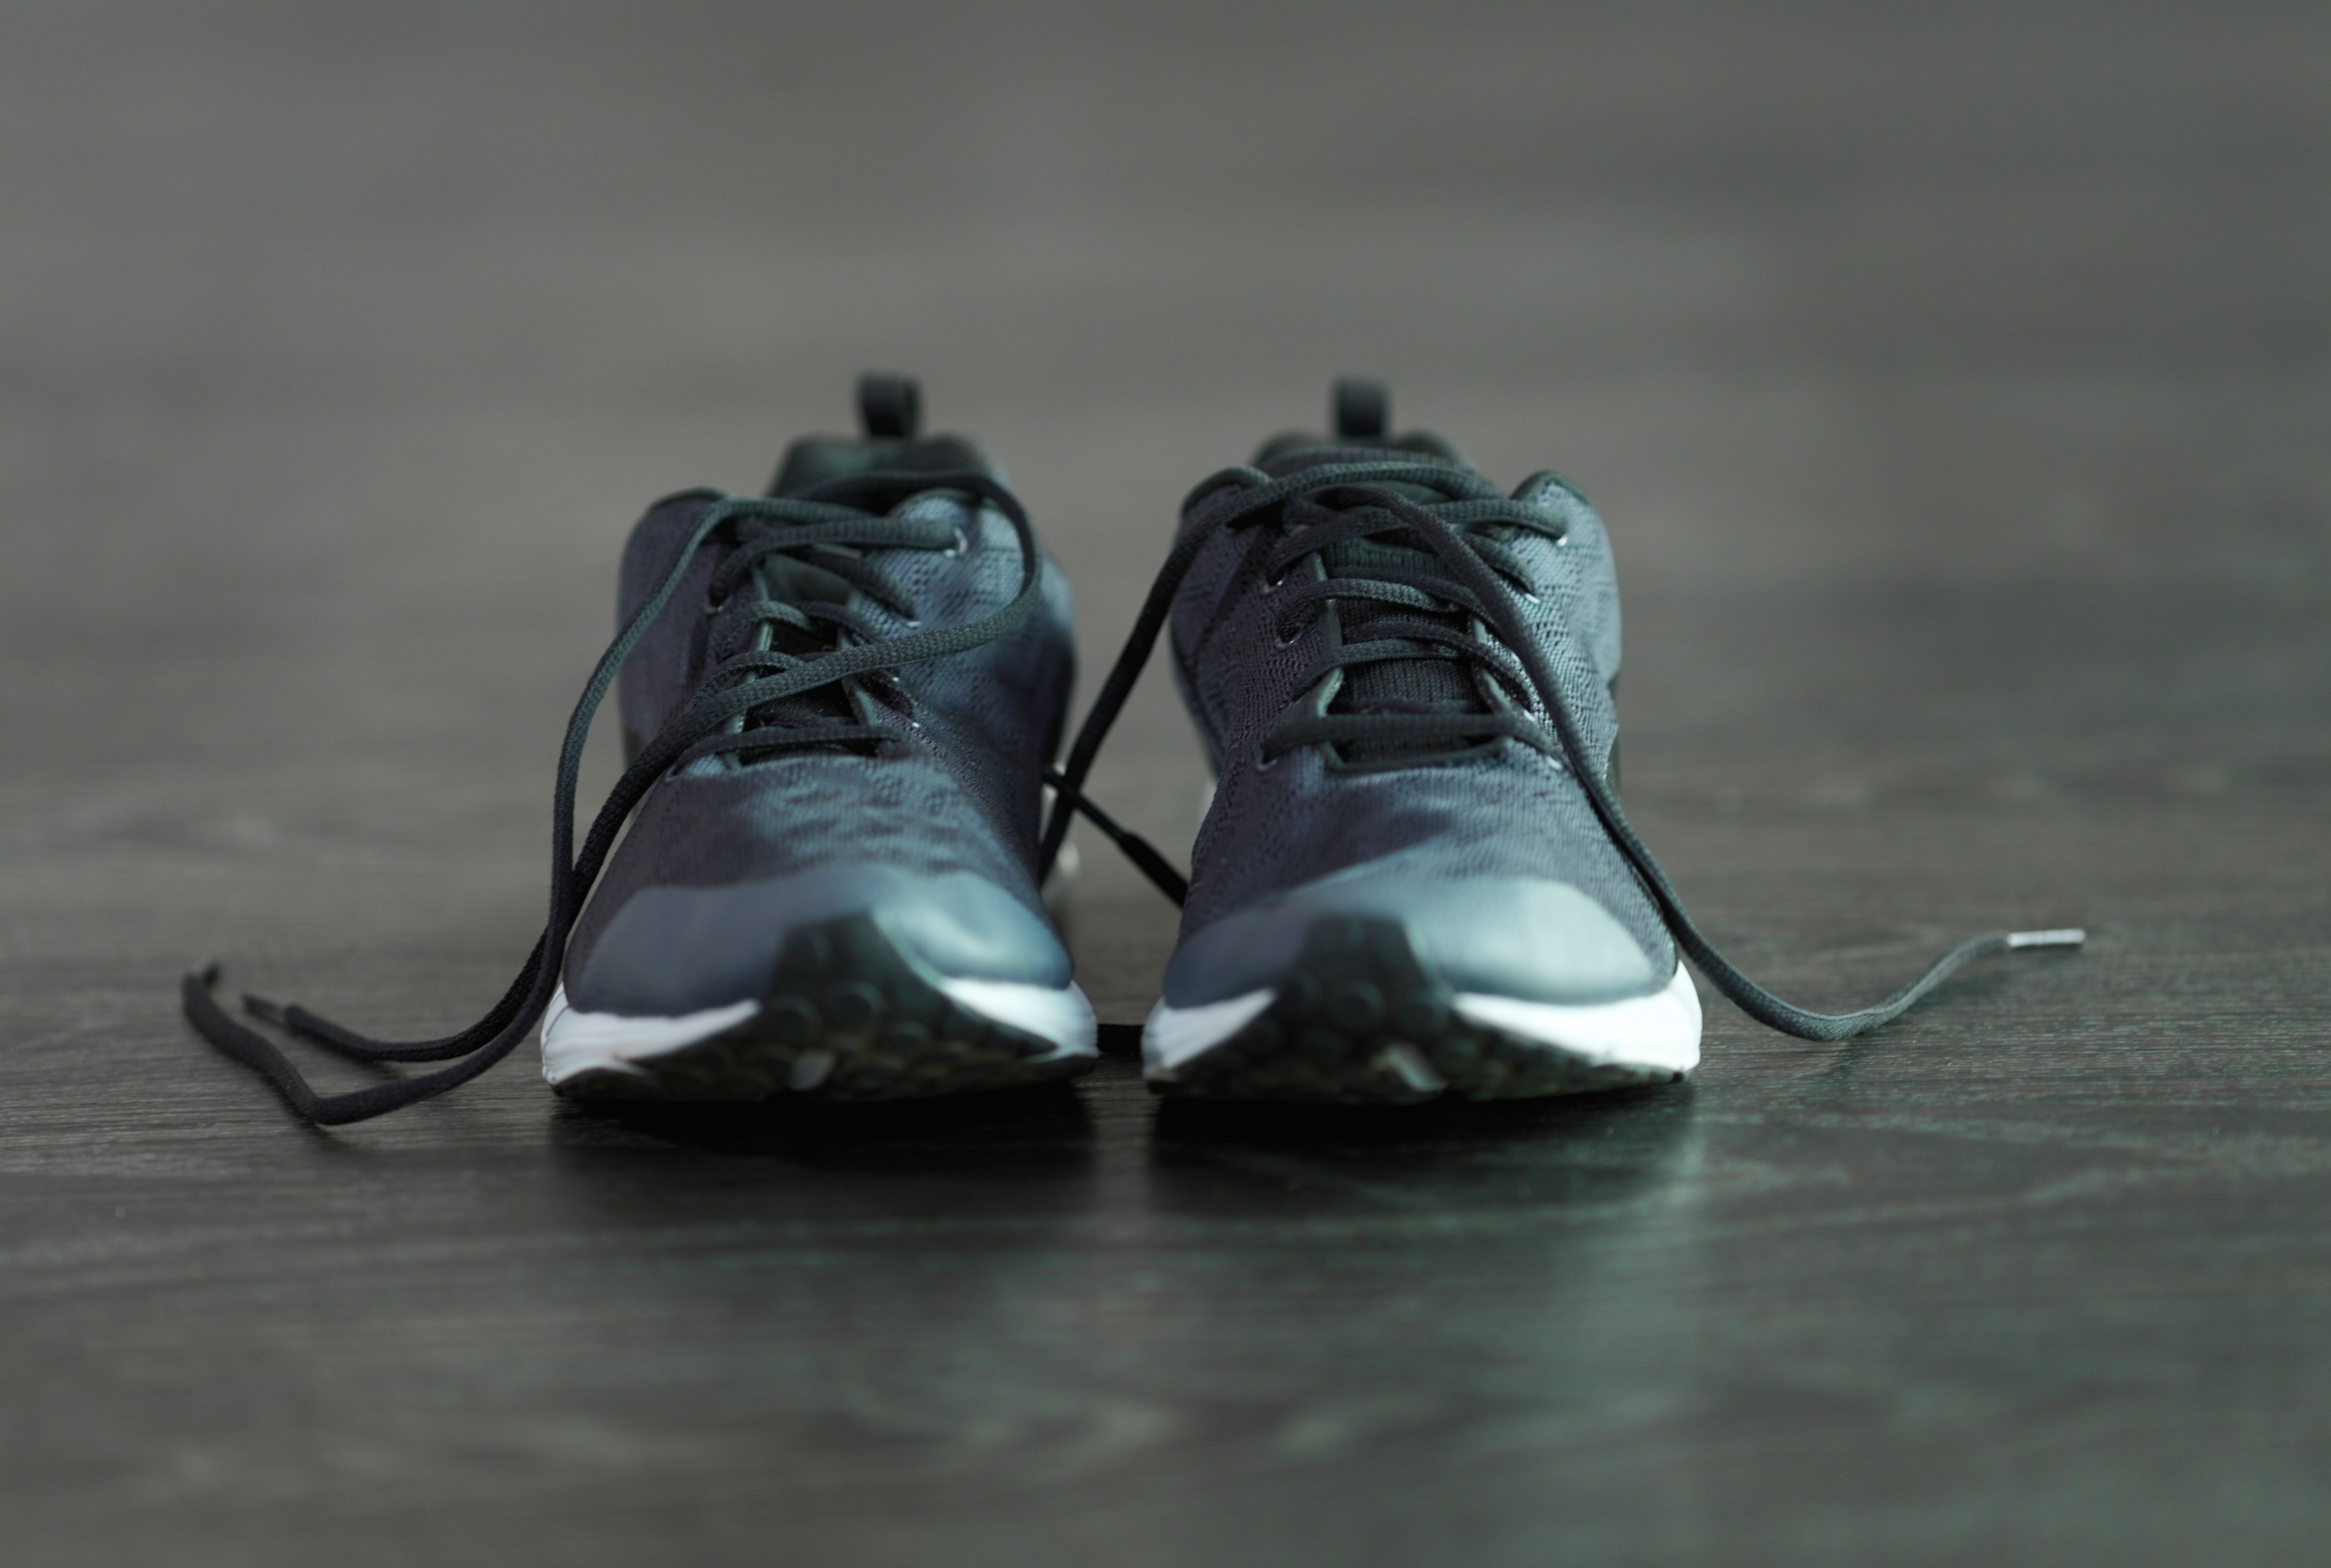 Black or white Lace Trap Great for all ages. Keep your shoe laces tied